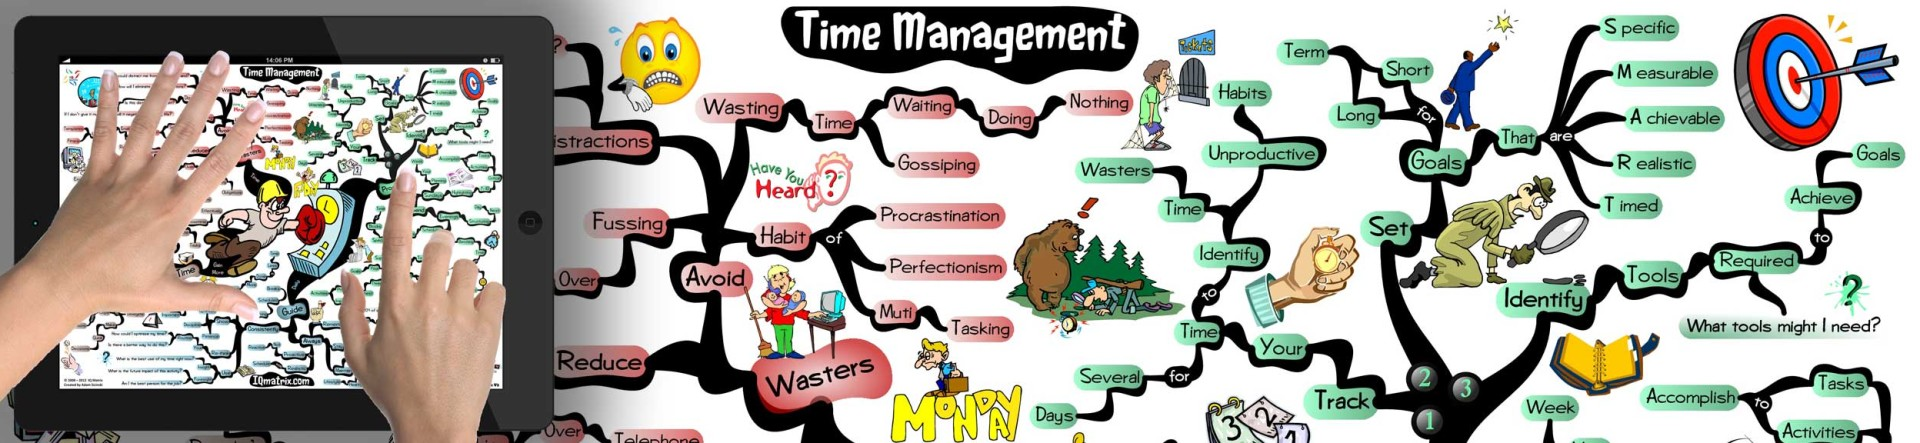 essay time management important Time management and personal development essay one's personality is formed and developed under the influence of multiple factors, objective and subjective, natural.